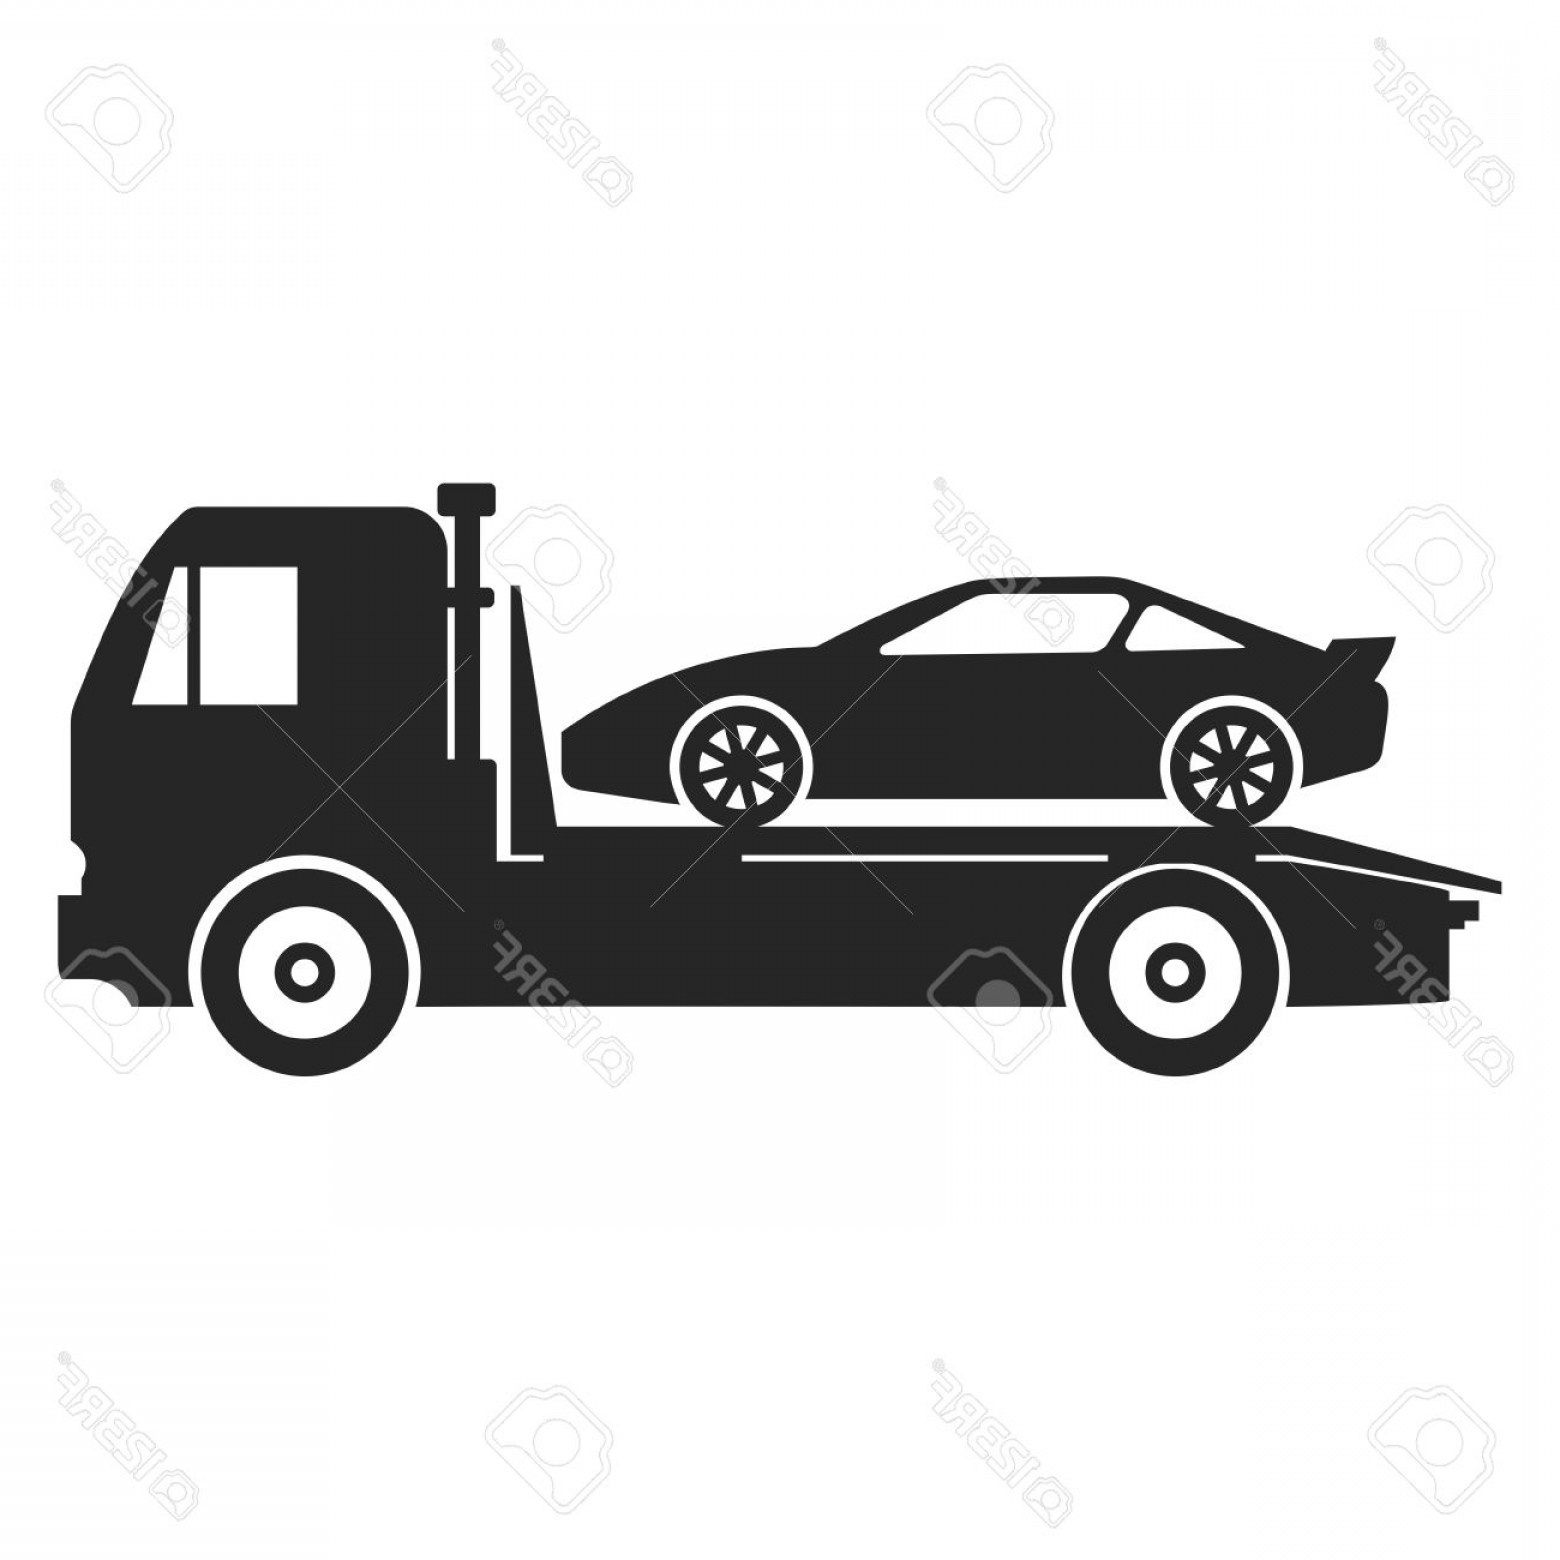 Towing Vector Clip Art: Photostock Vector Car Towing Truck Icon